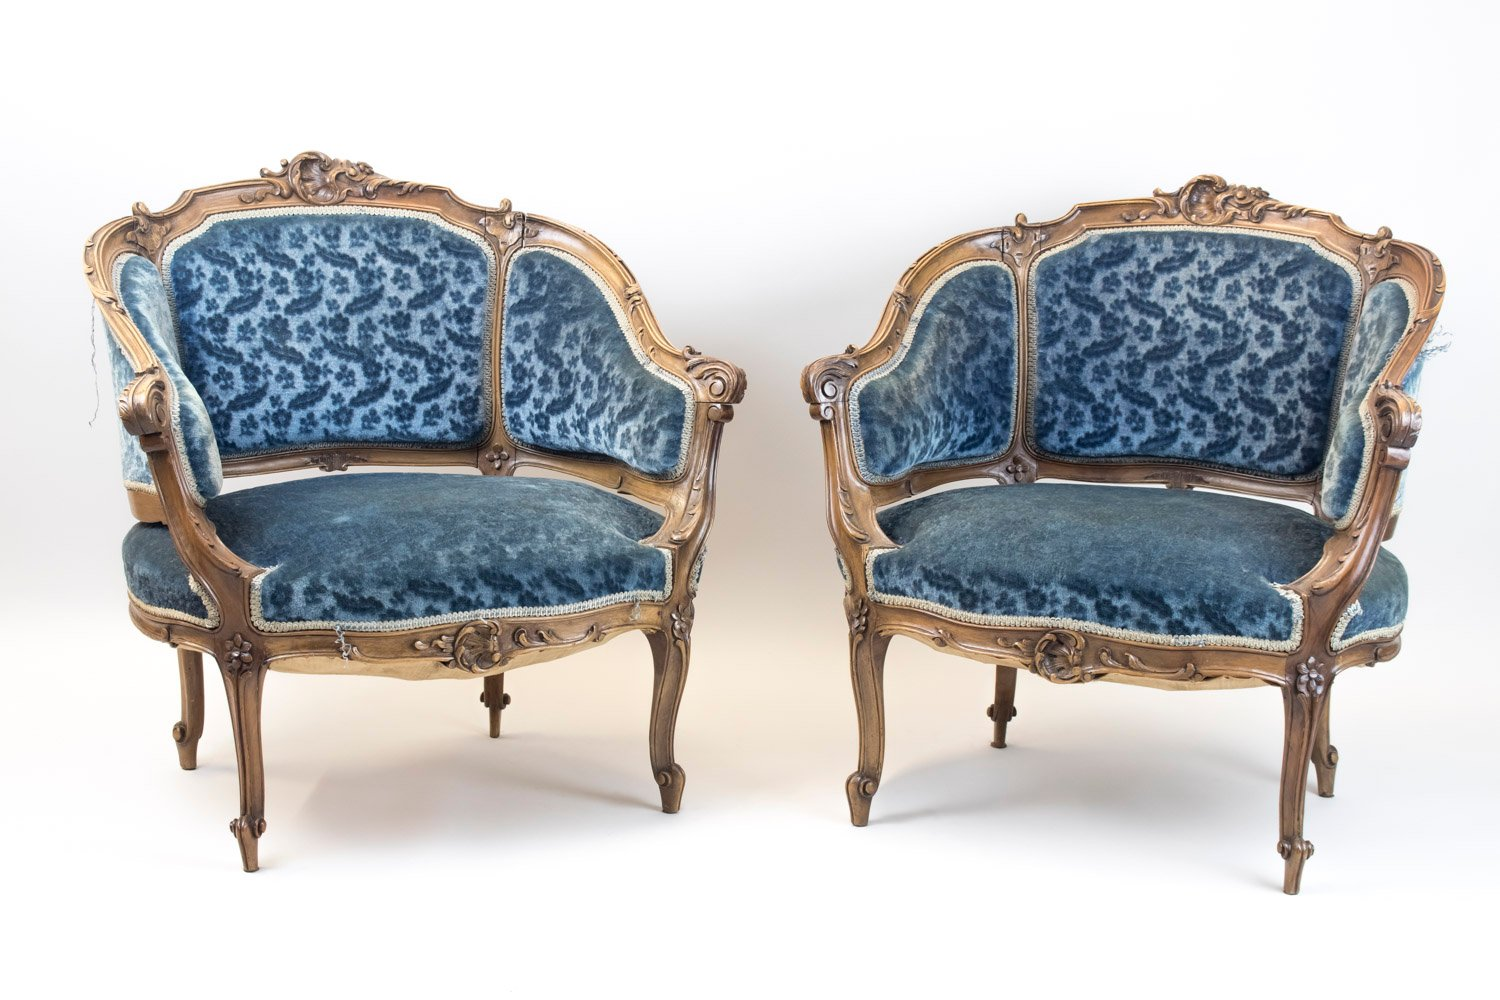 Antique Corbeille-Shaped Bergere Lounge Chairs, Set of 2 - Antique Corbeille-Shaped Bergere Lounge Chairs, Set Of 2 For Sale At